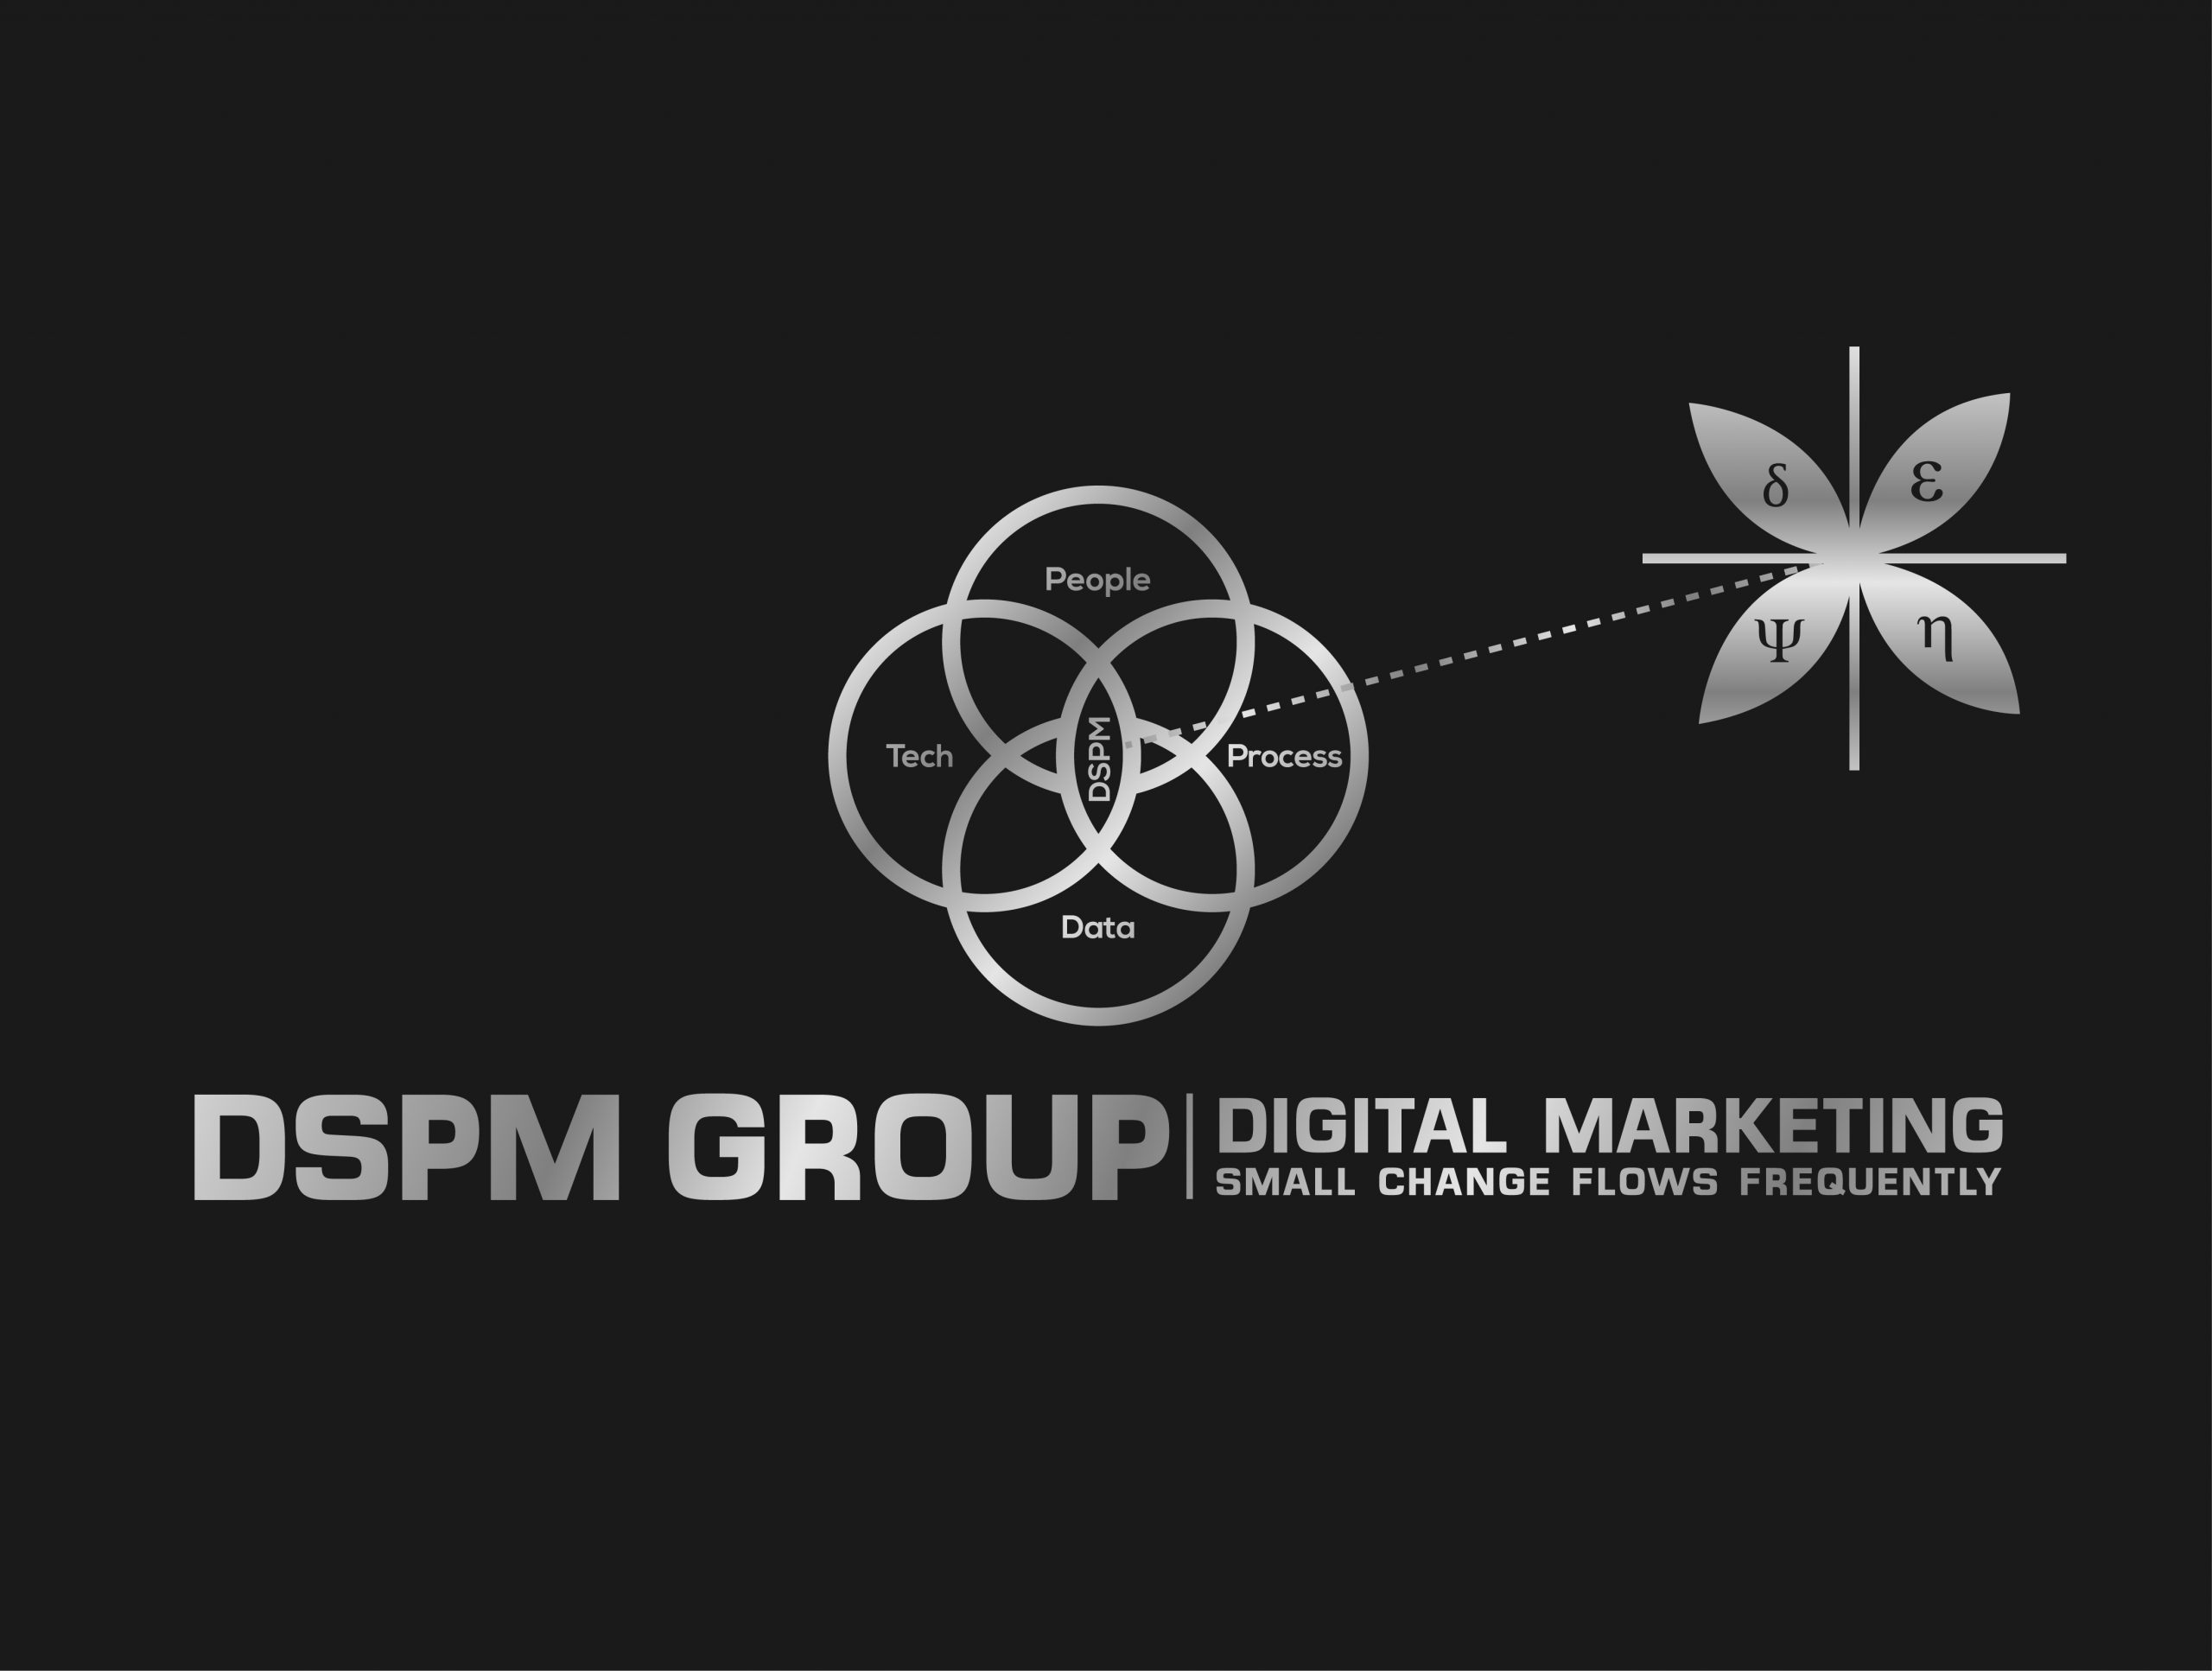 DSPM Group Offers Digital Marketing And Business Consultation Services For Businesses In Dublin, California